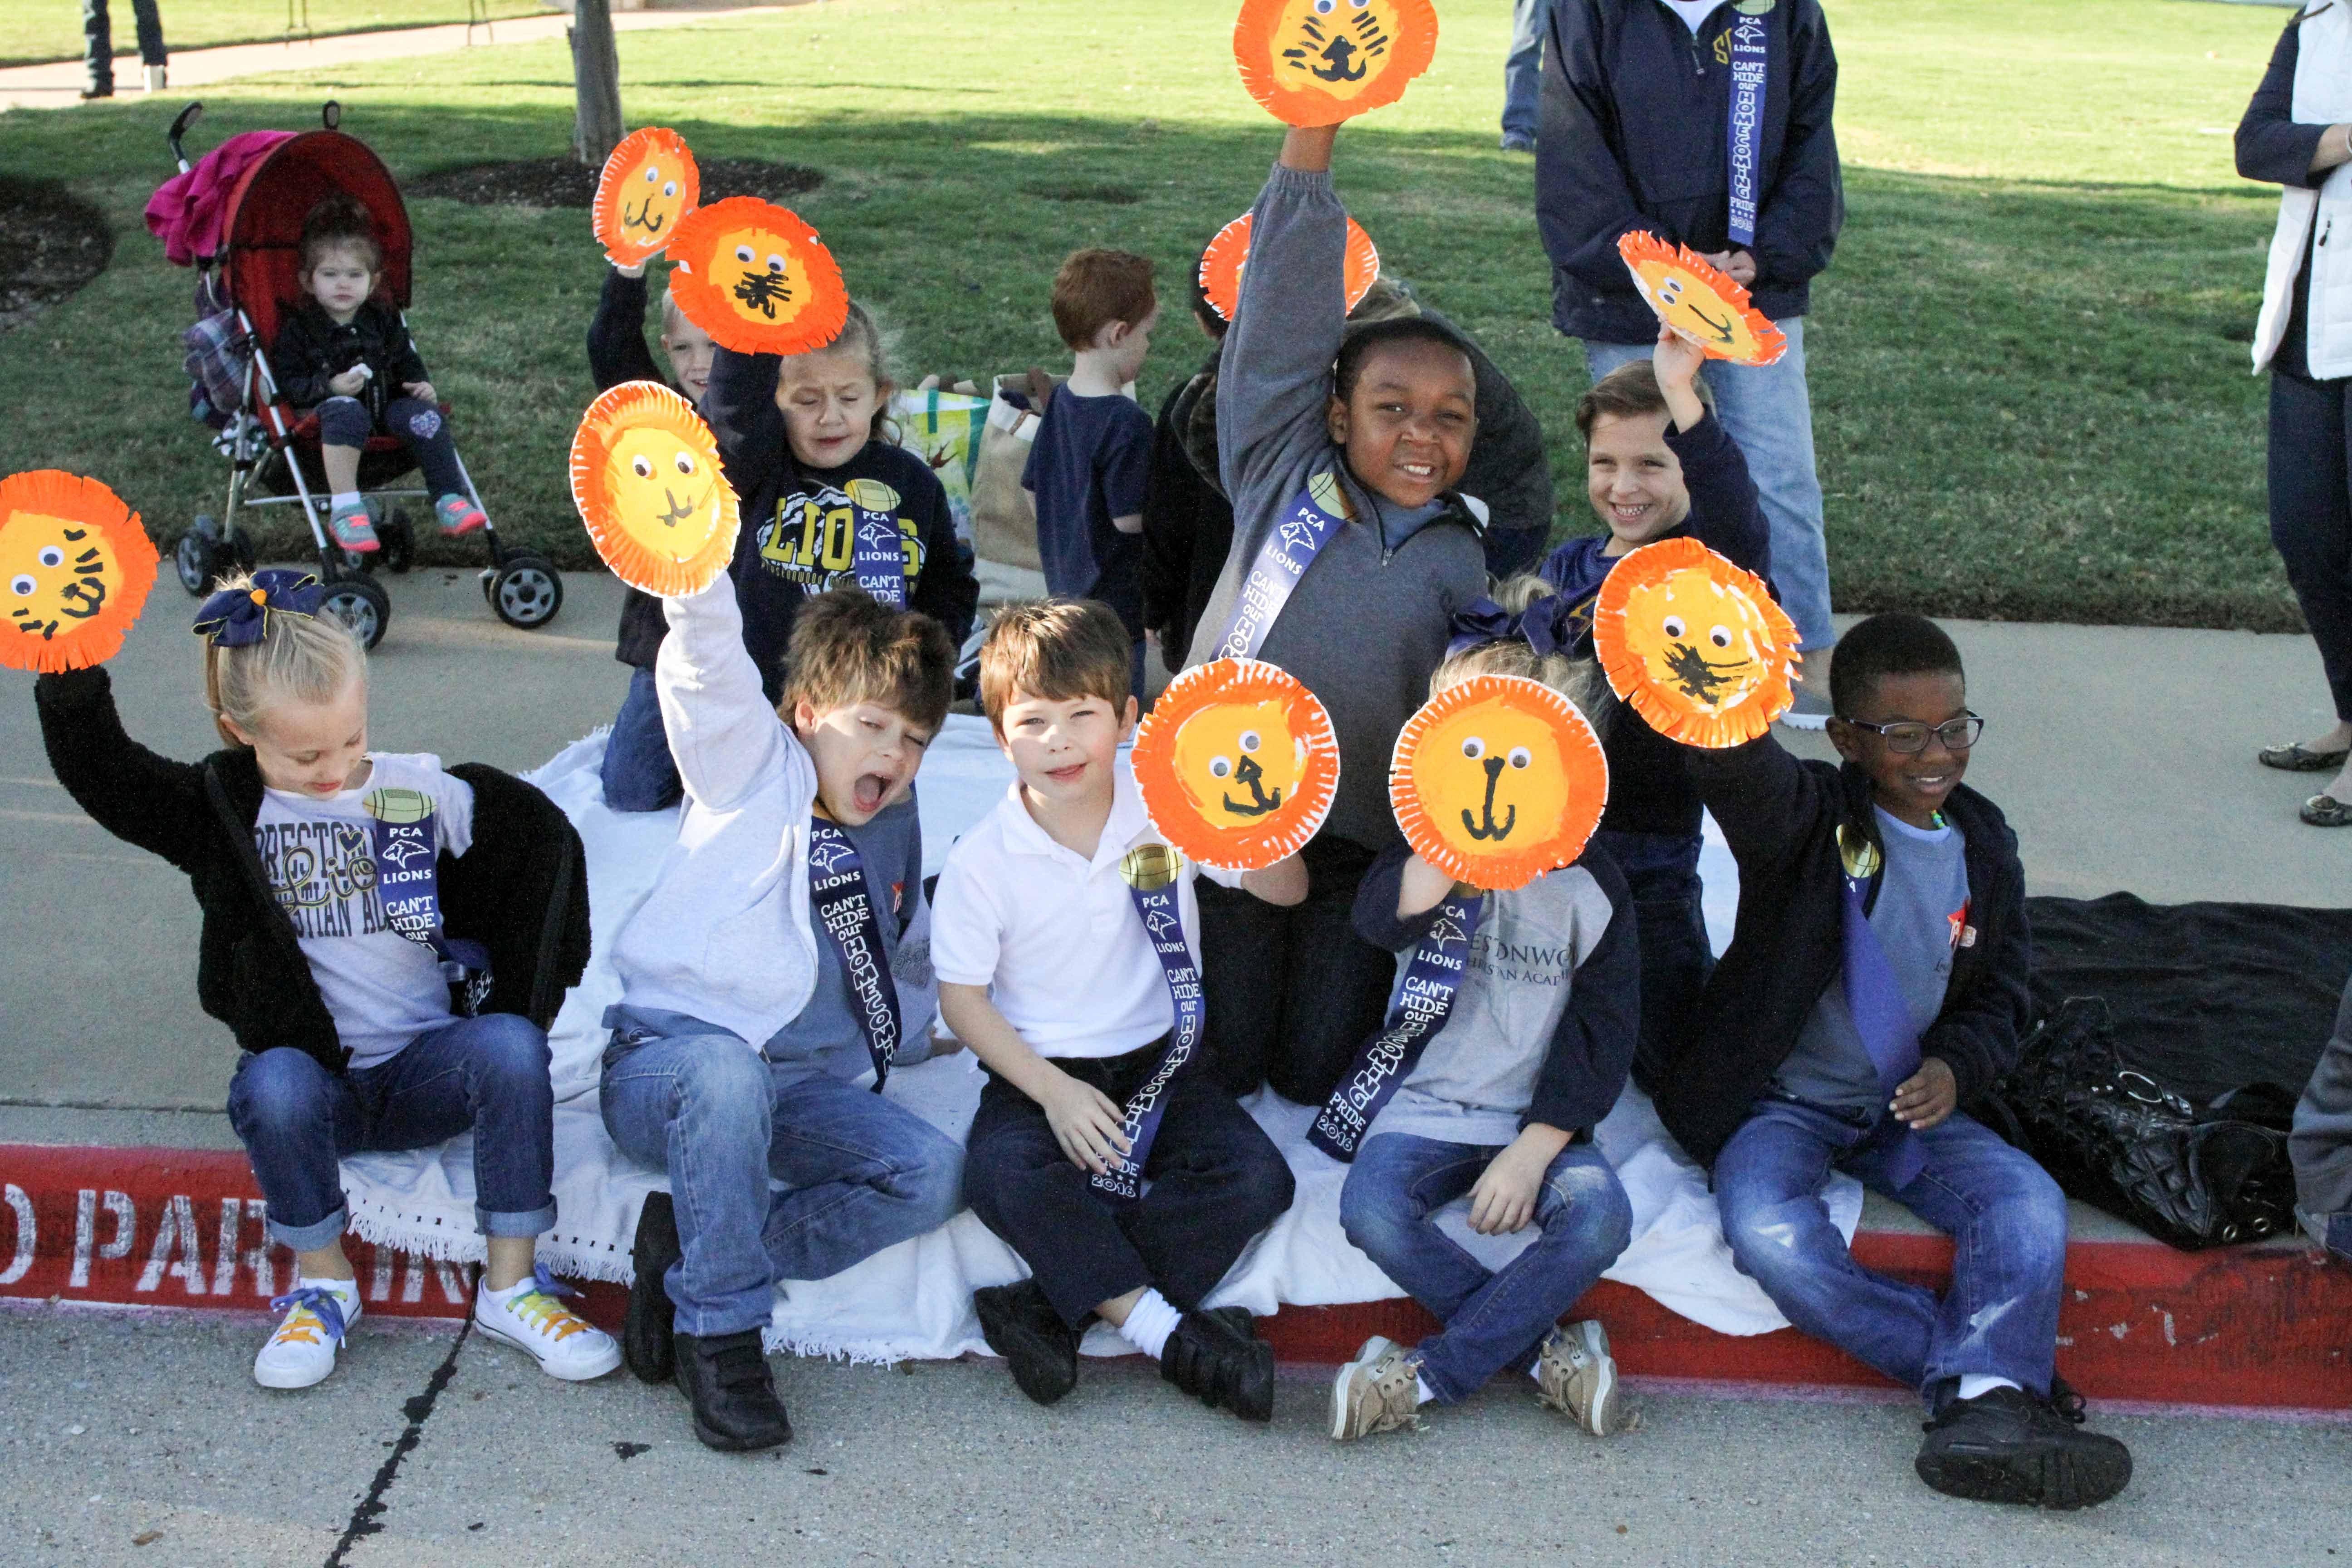 Students from Kindergarten teacher Julie Zarzycki's class at the North Campus wave lion shakers as the Parade passes by.